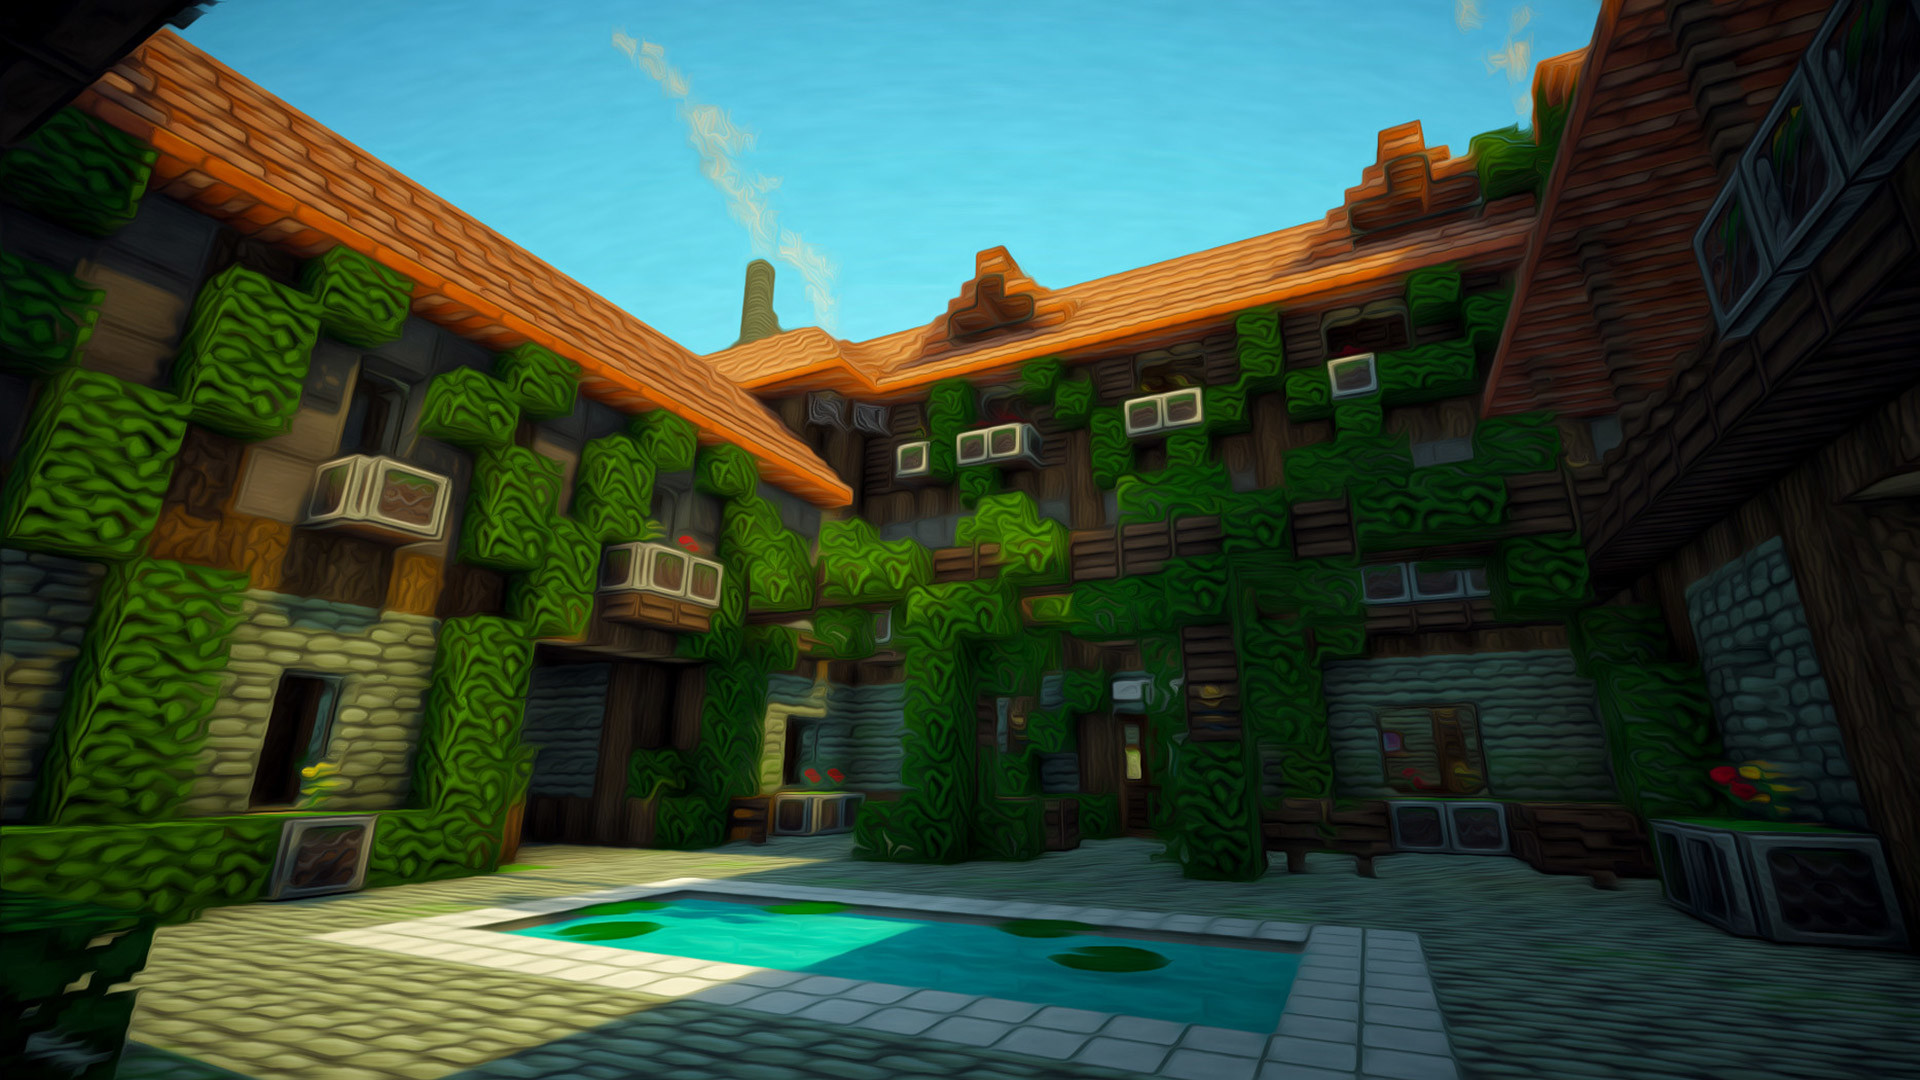 1920x1200 Page Full HD P Minecraft Wallpapers Desktop Backgrounds